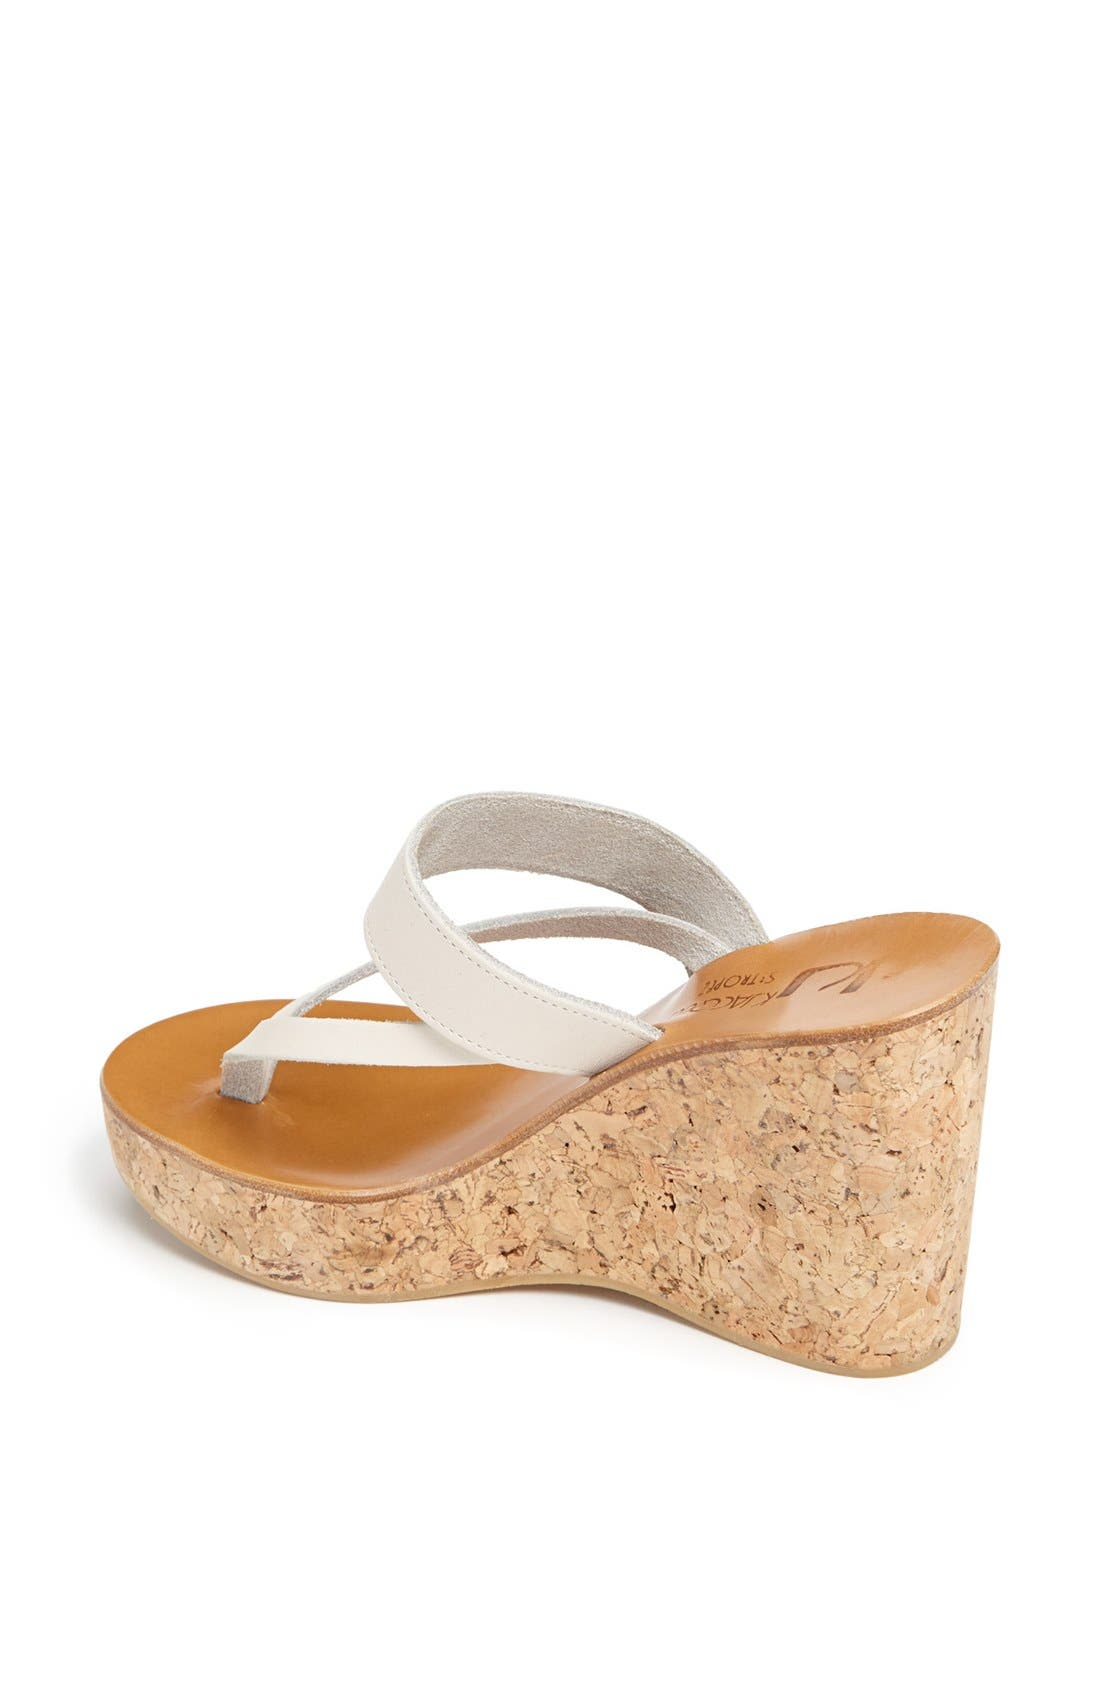 Alternate Image 2  - K.Jacques St. Tropez 'Saturnine' Cork Wedge Sandal